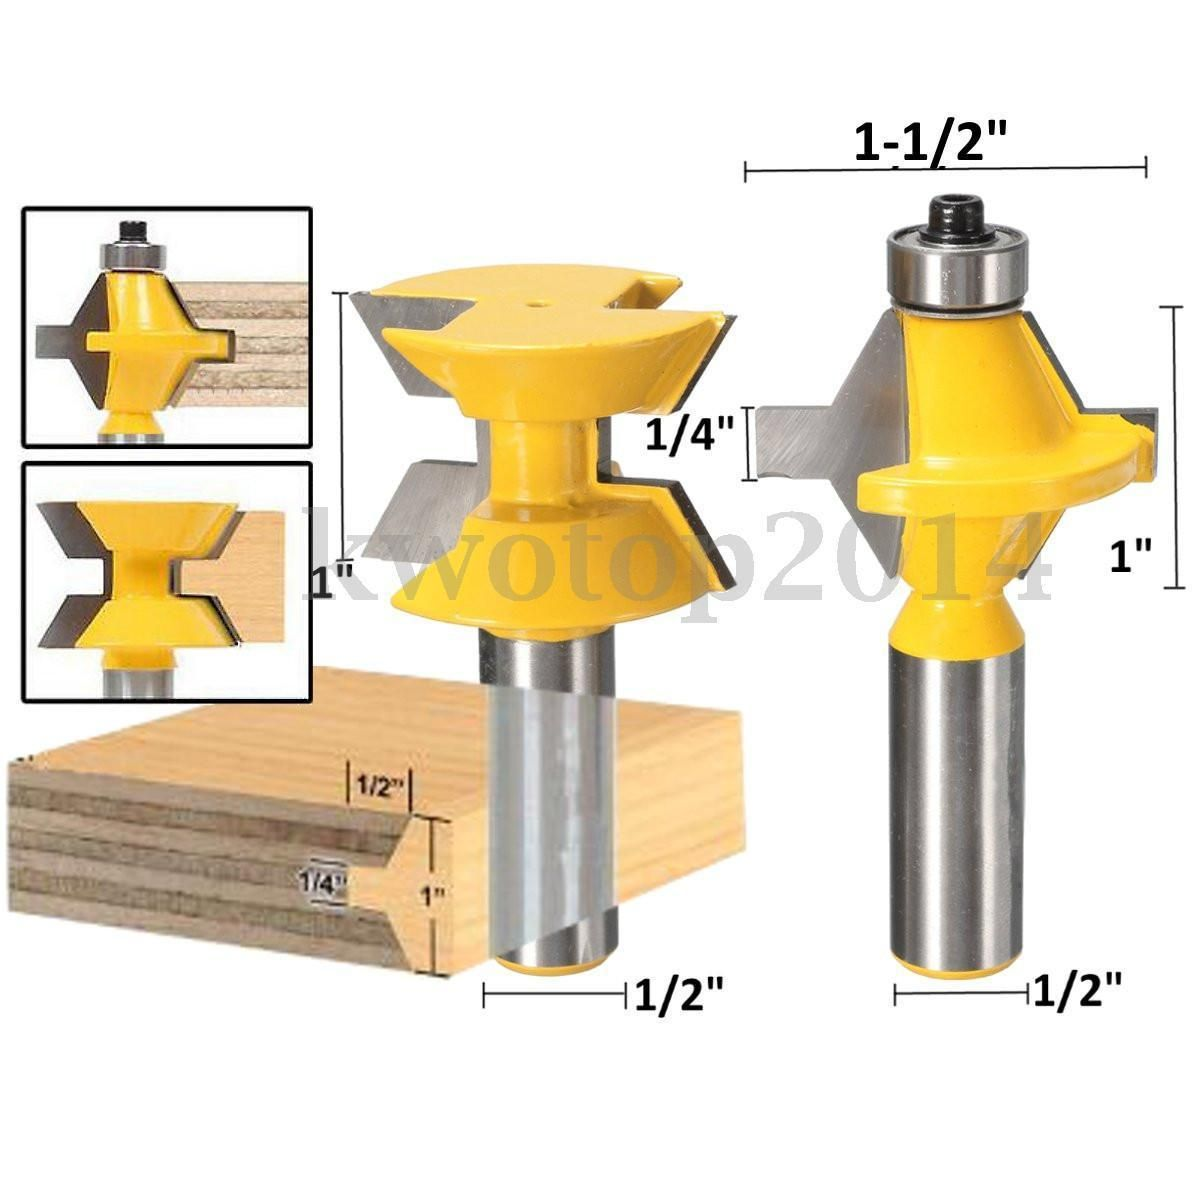 2x 120 Deg Matched Tongue Groove Router Bit 1 2 Sh Woodworking Edge Banding Router Bits Router Bit Set Router Woodworking